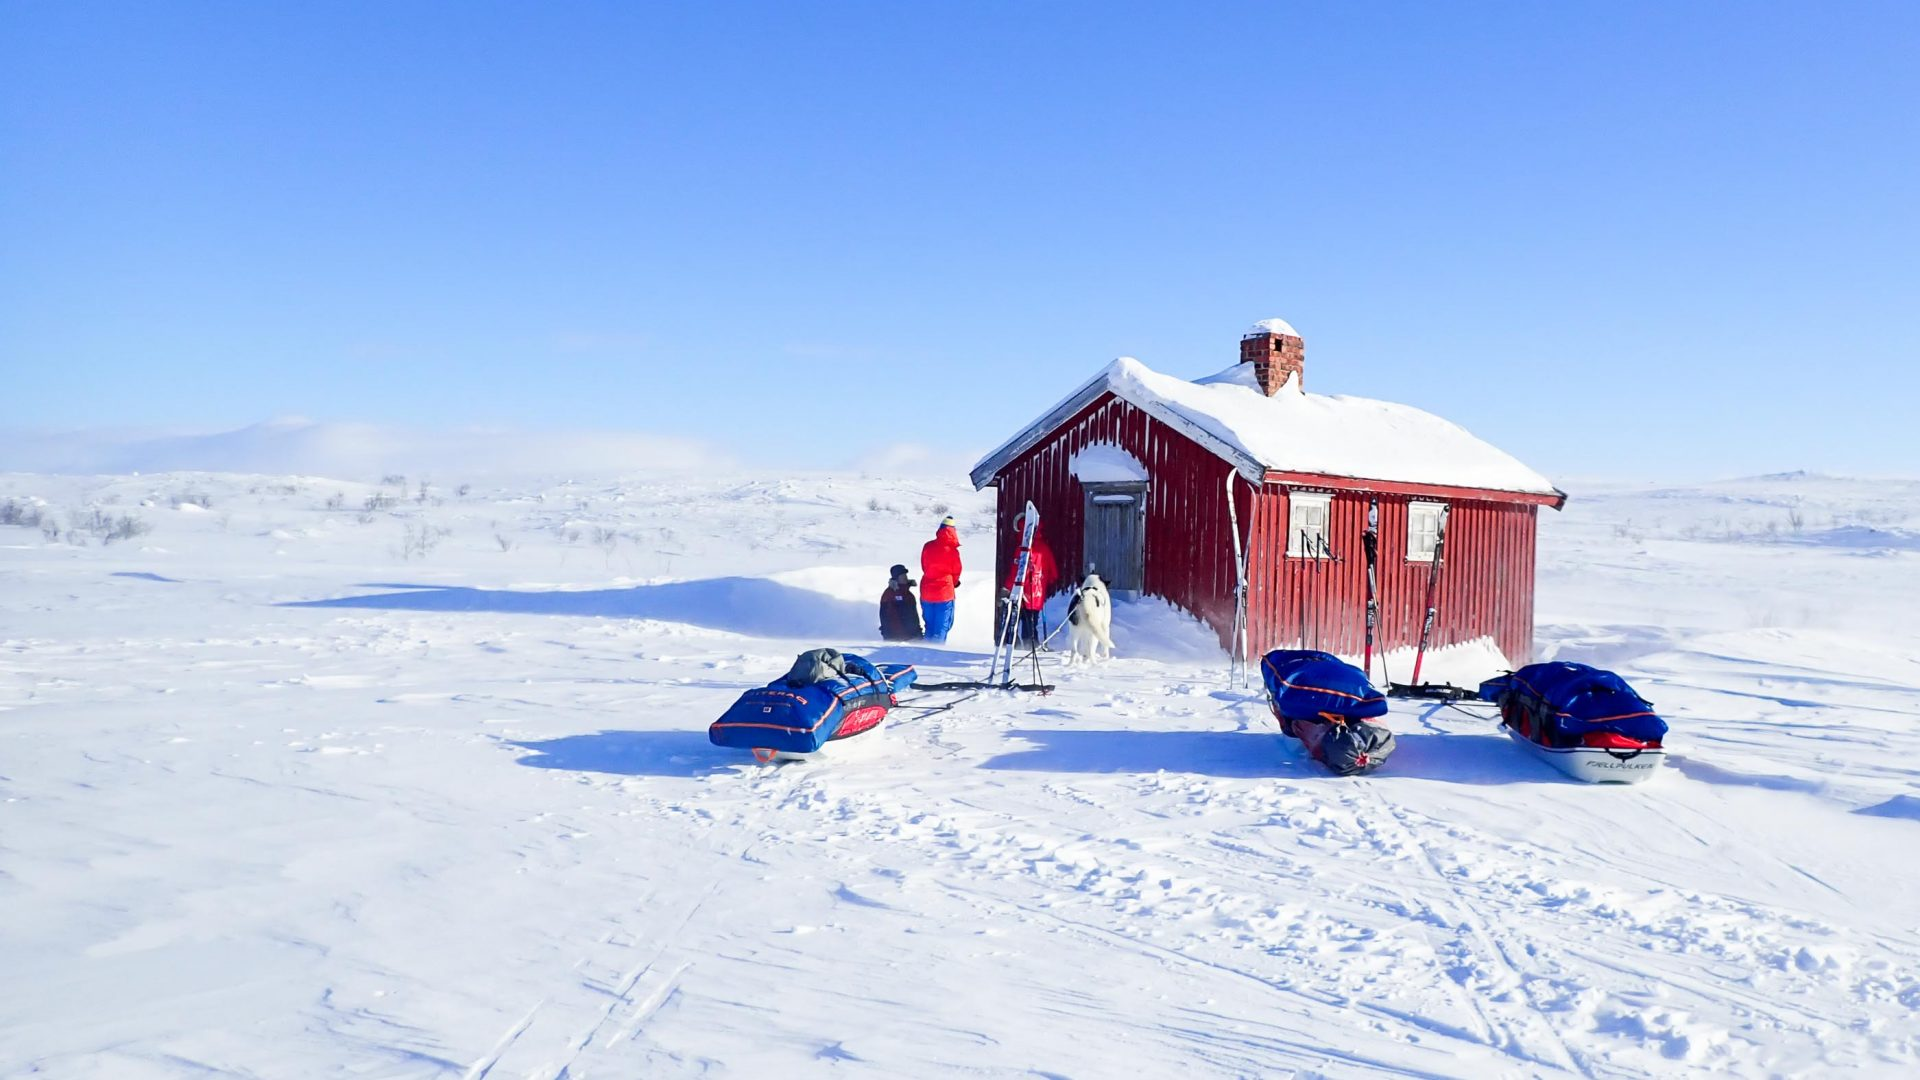 Red hut in snow.